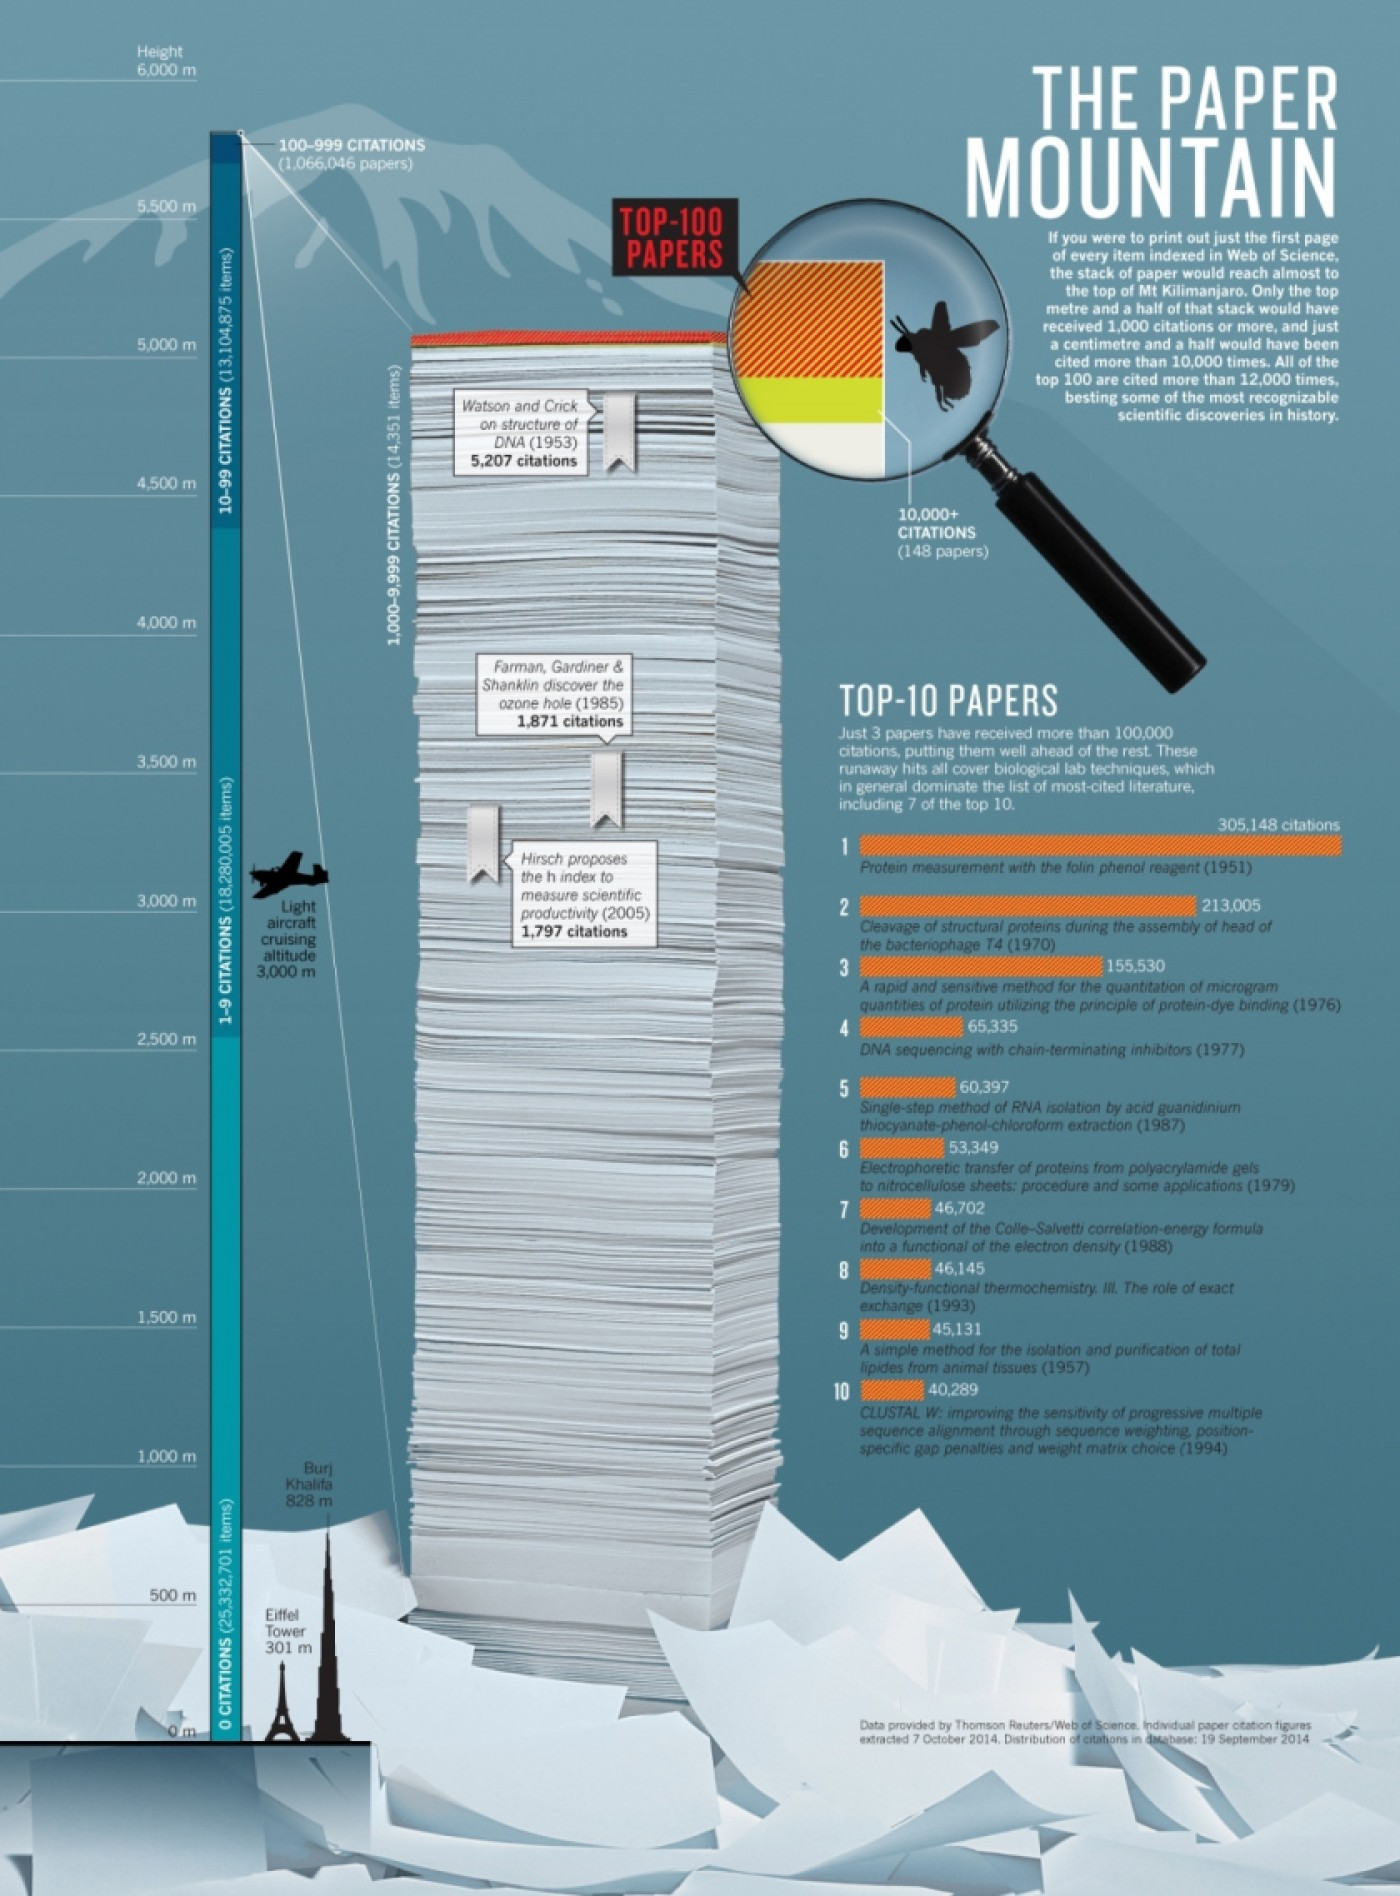 017 Cited Research Paper Nature Top 100 Papers Infographicv2 30 Archaicawful Works Mla Example 1400